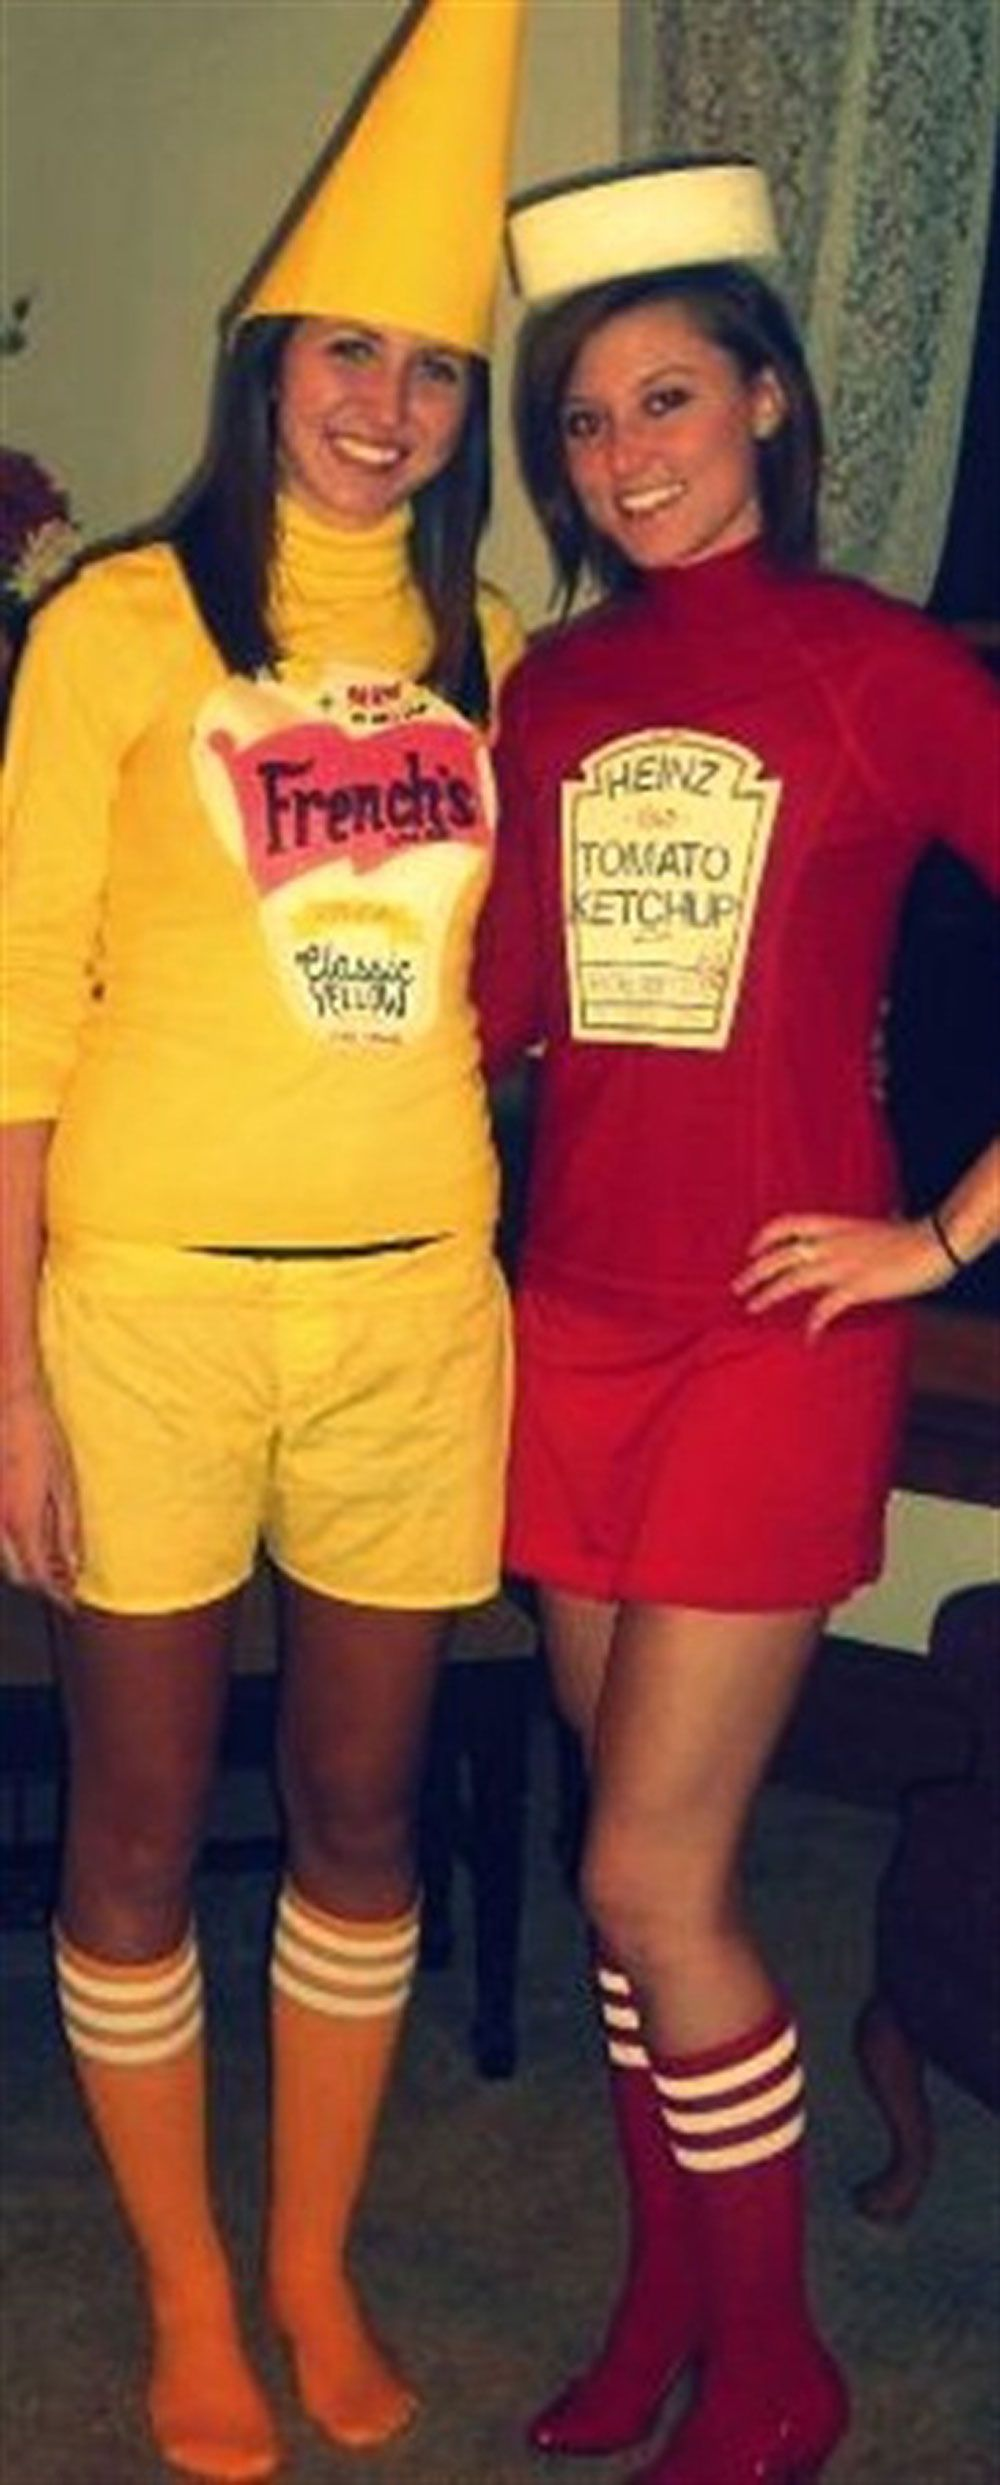 23 Genius BFF Halloween Costume Ideas You Need to Try ...